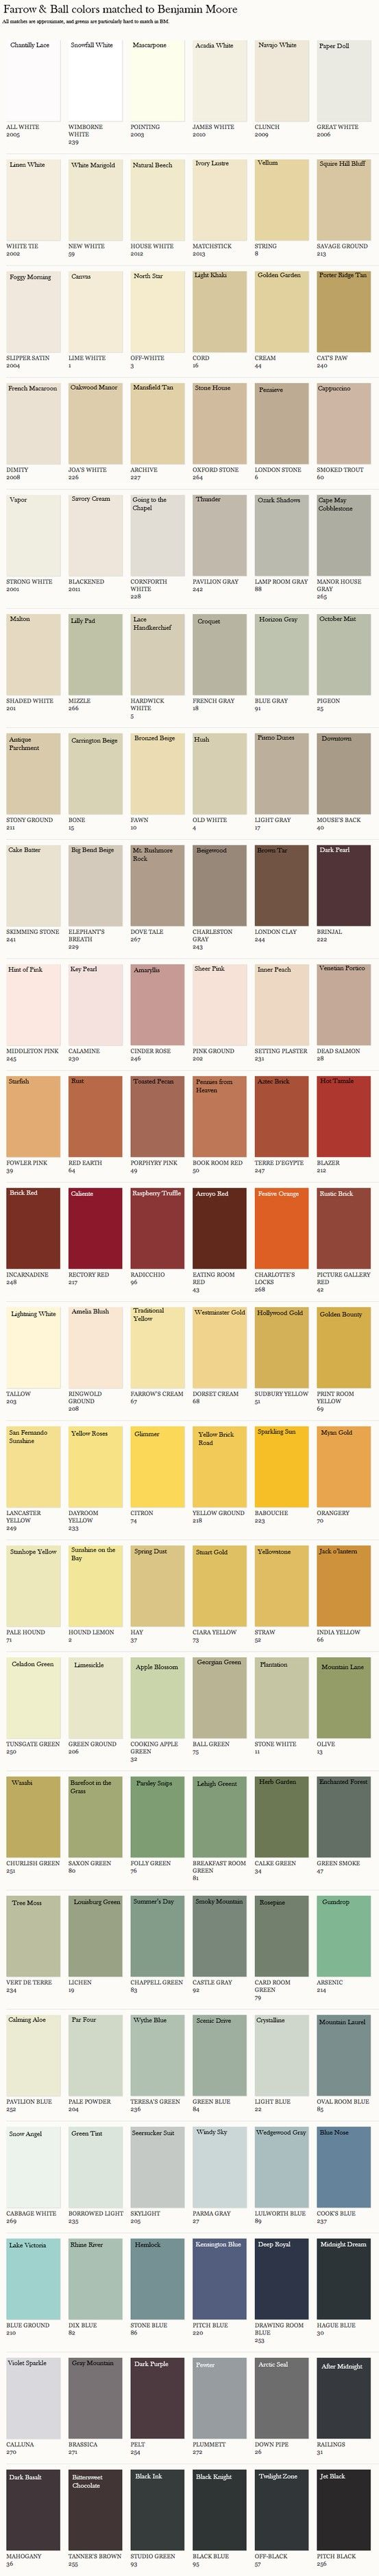 Farrow Ball Paint Colors Matched To Benjamin Moore Colors Everything Is Approximate And F